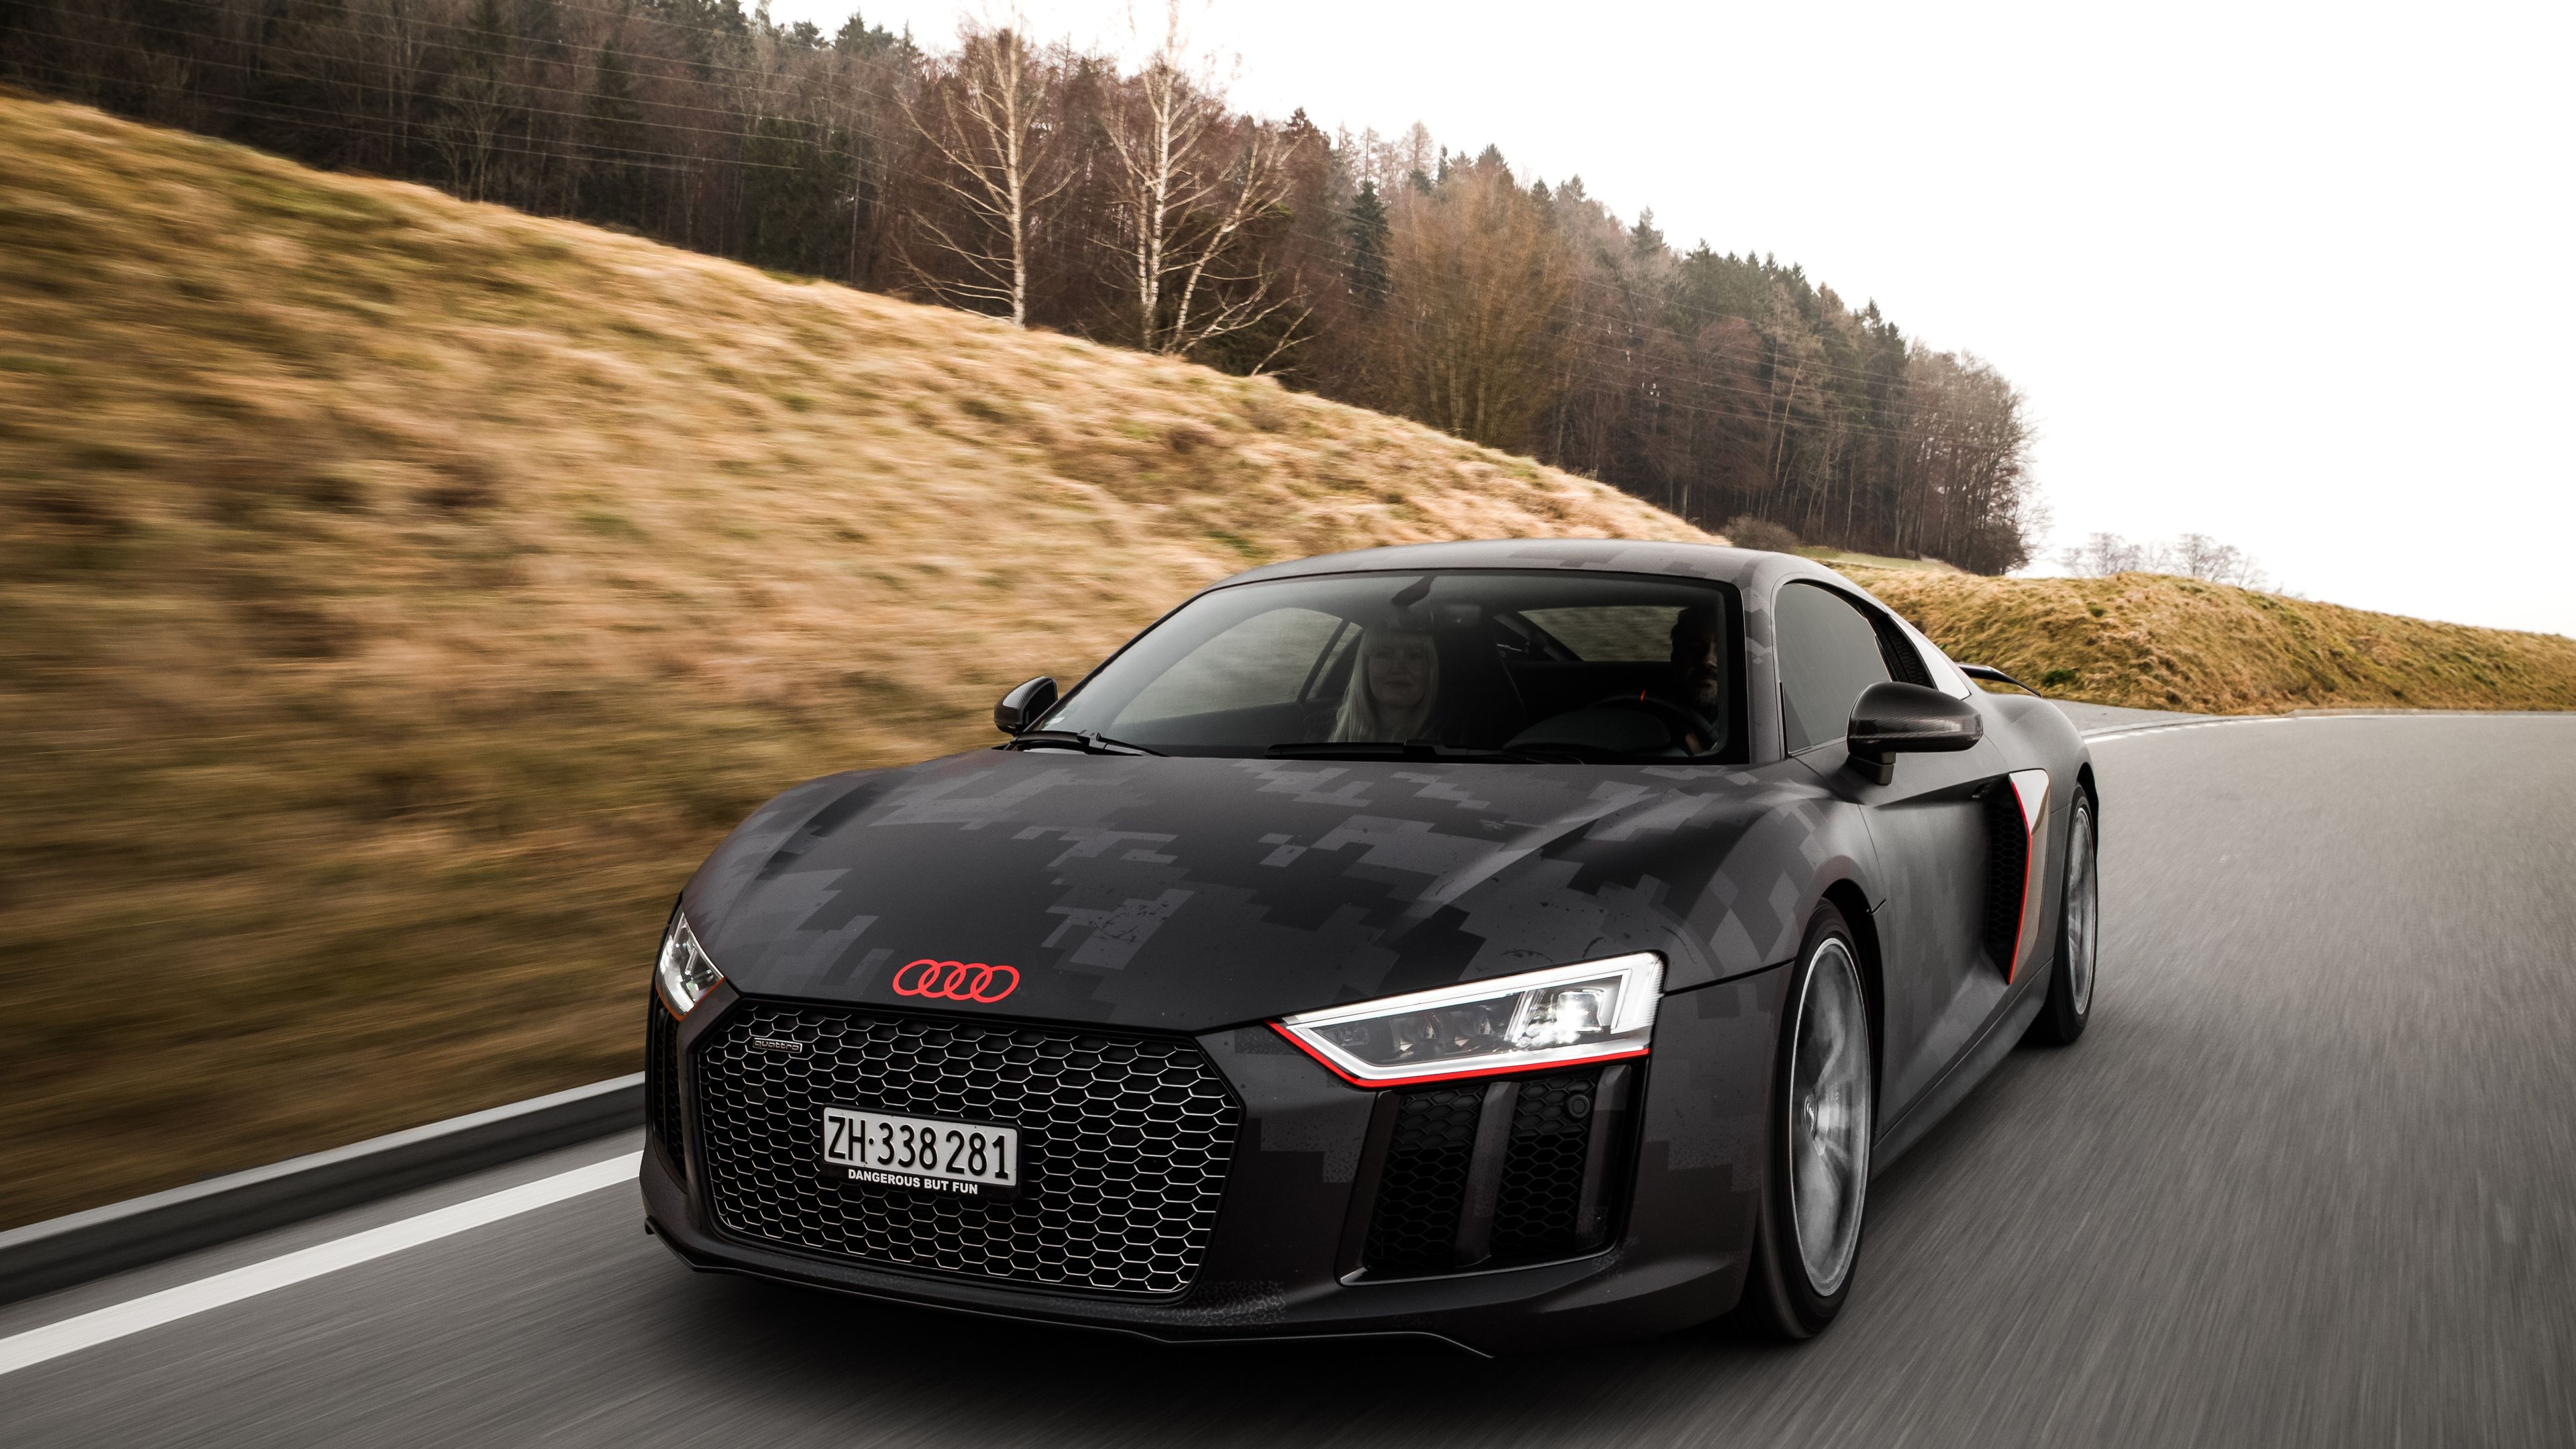 Black Audi R8 V10 Plus 4k Hd Wallpapers Cars Wallpapers Audi